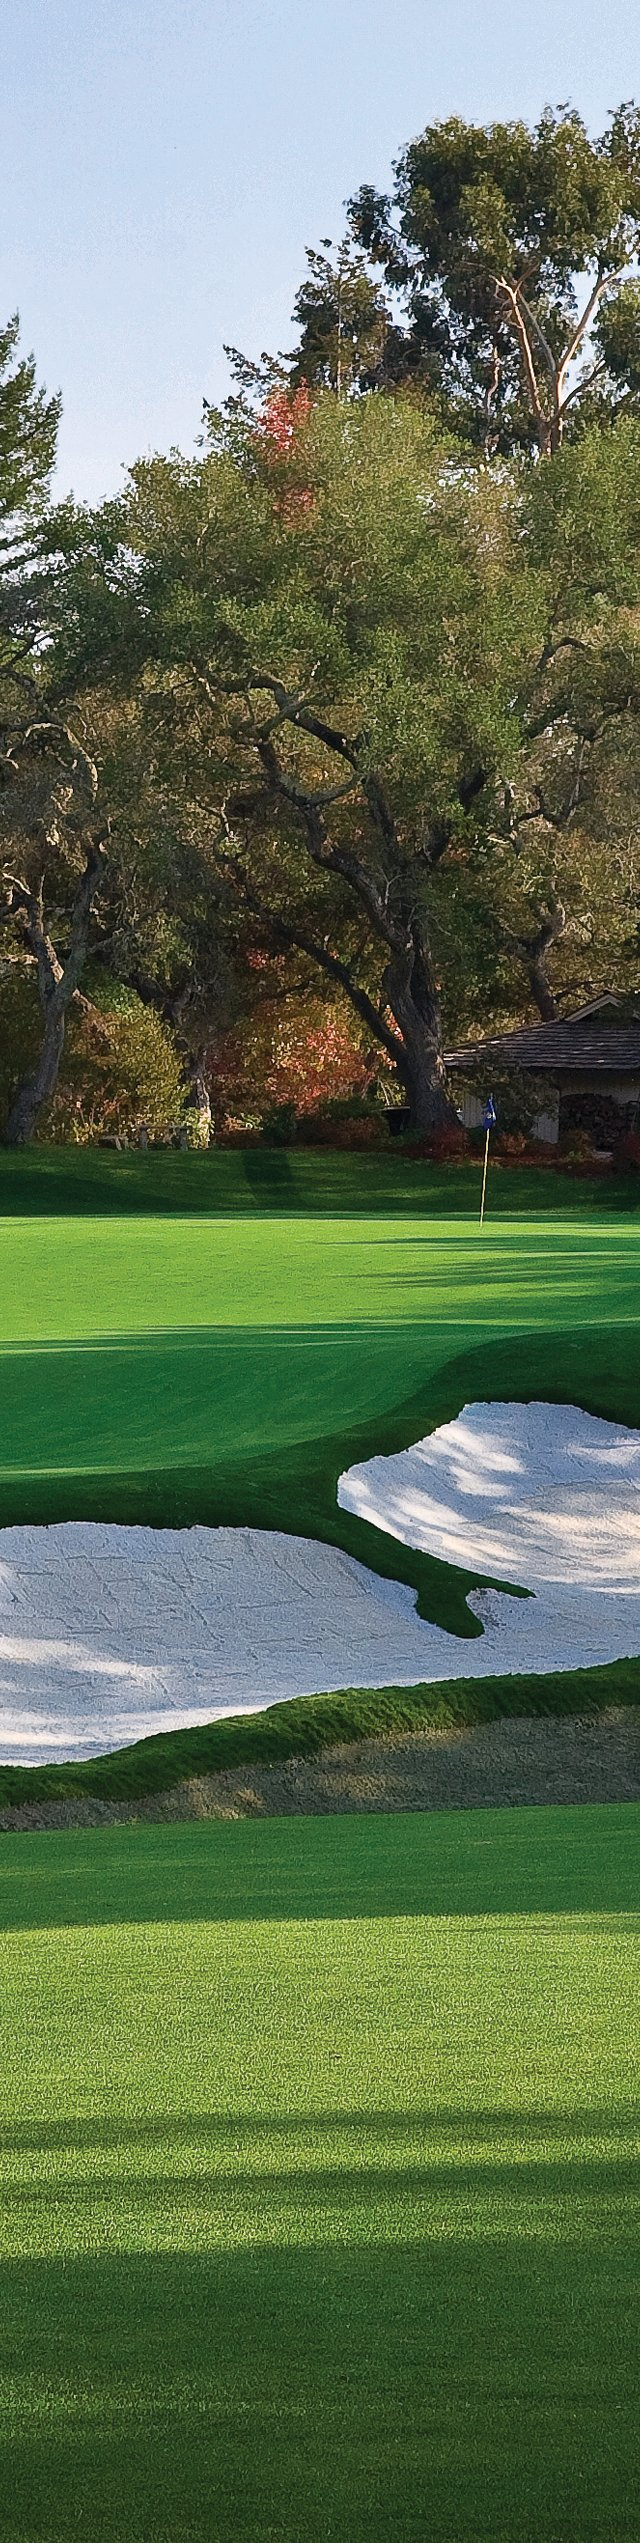 No. 16 at Pasatiempo Golf Club